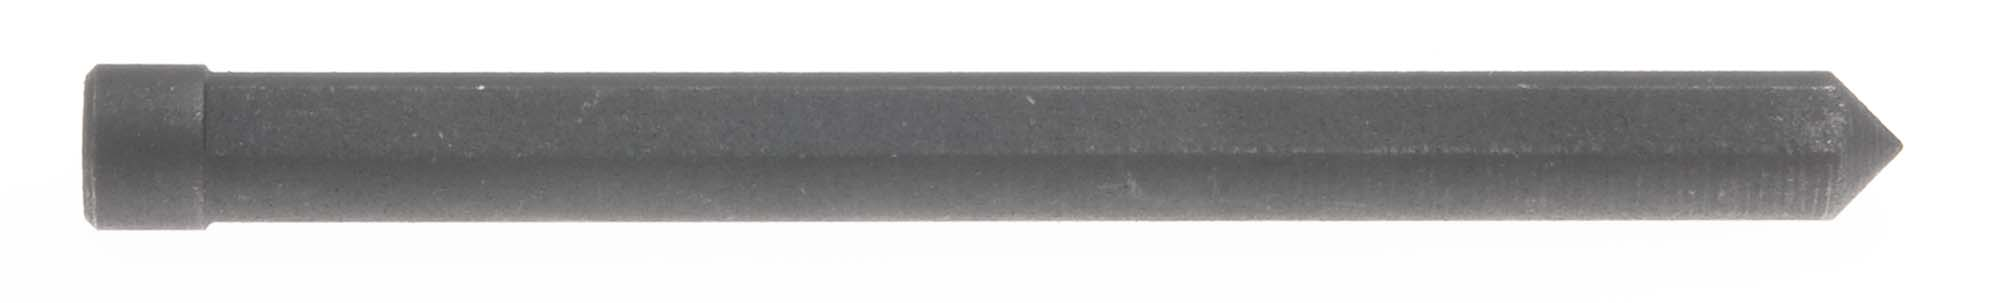 "Ejector Pin for 1"" Annular Cutter (except 7/16"")"